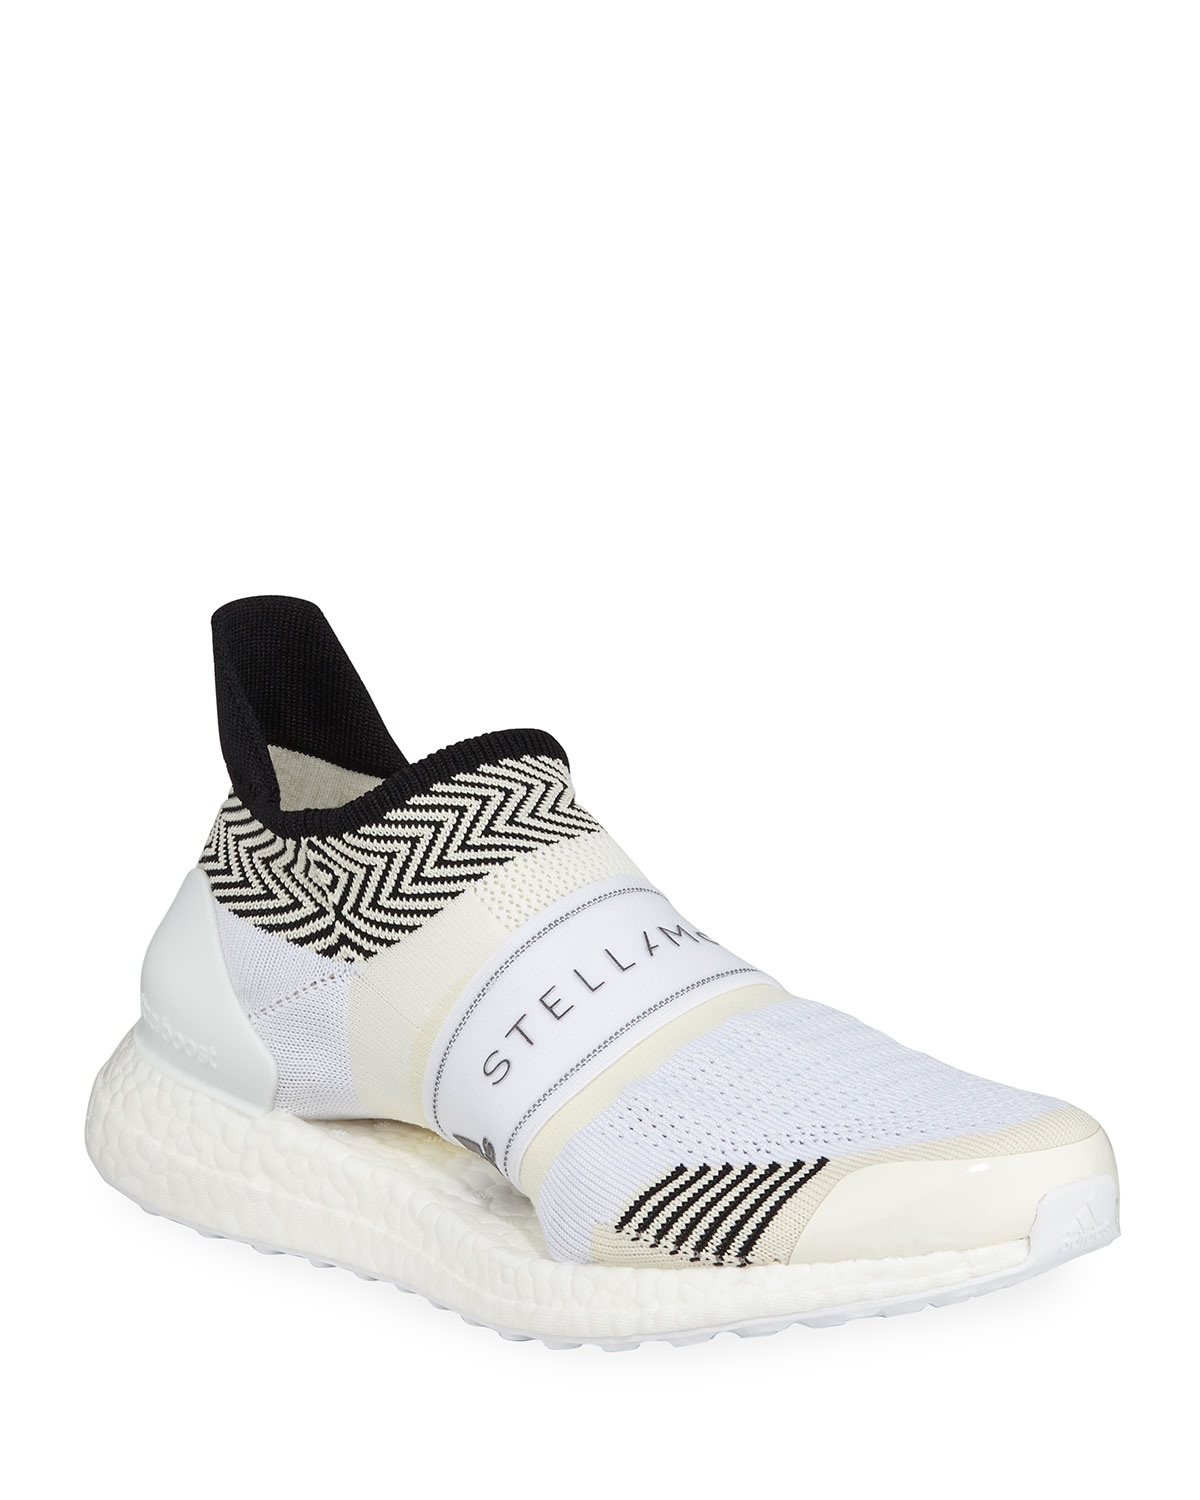 timeless design 3f16c b9896 adidas by Stella McCartney UltraBoost X 3D Sneakers, White